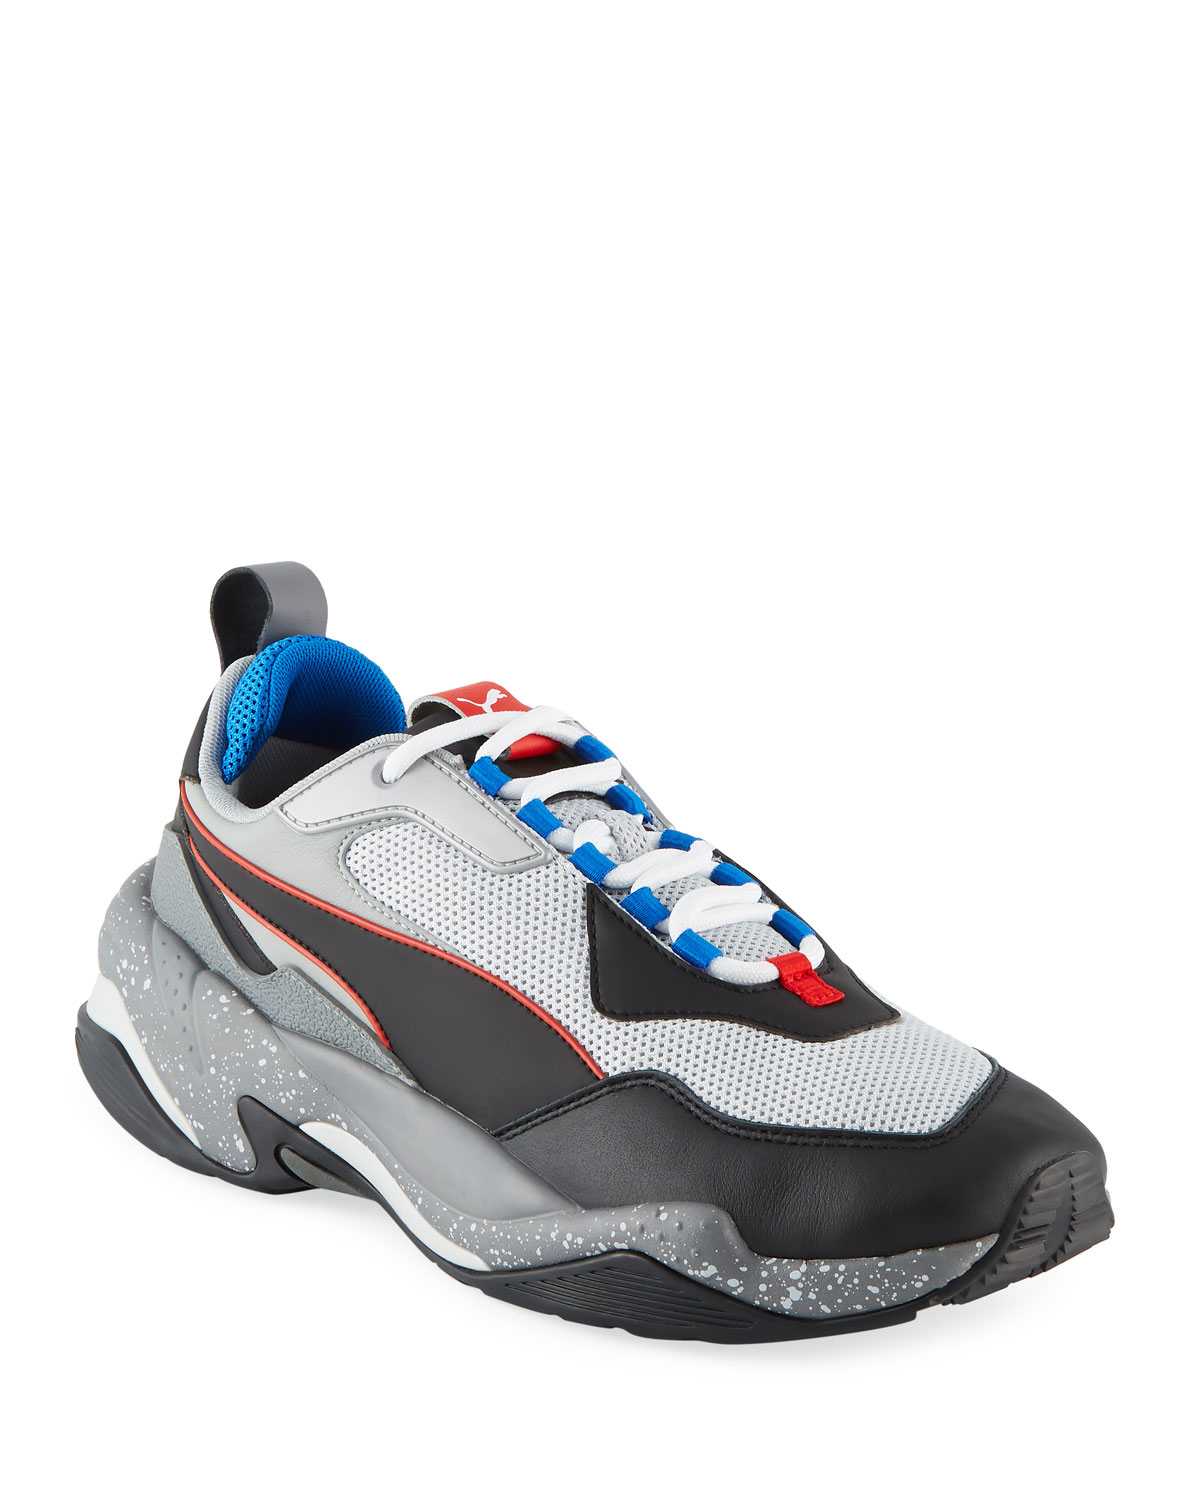 Puma Men s Thunder Electric Leather Trainer Sneakers  15b50114b